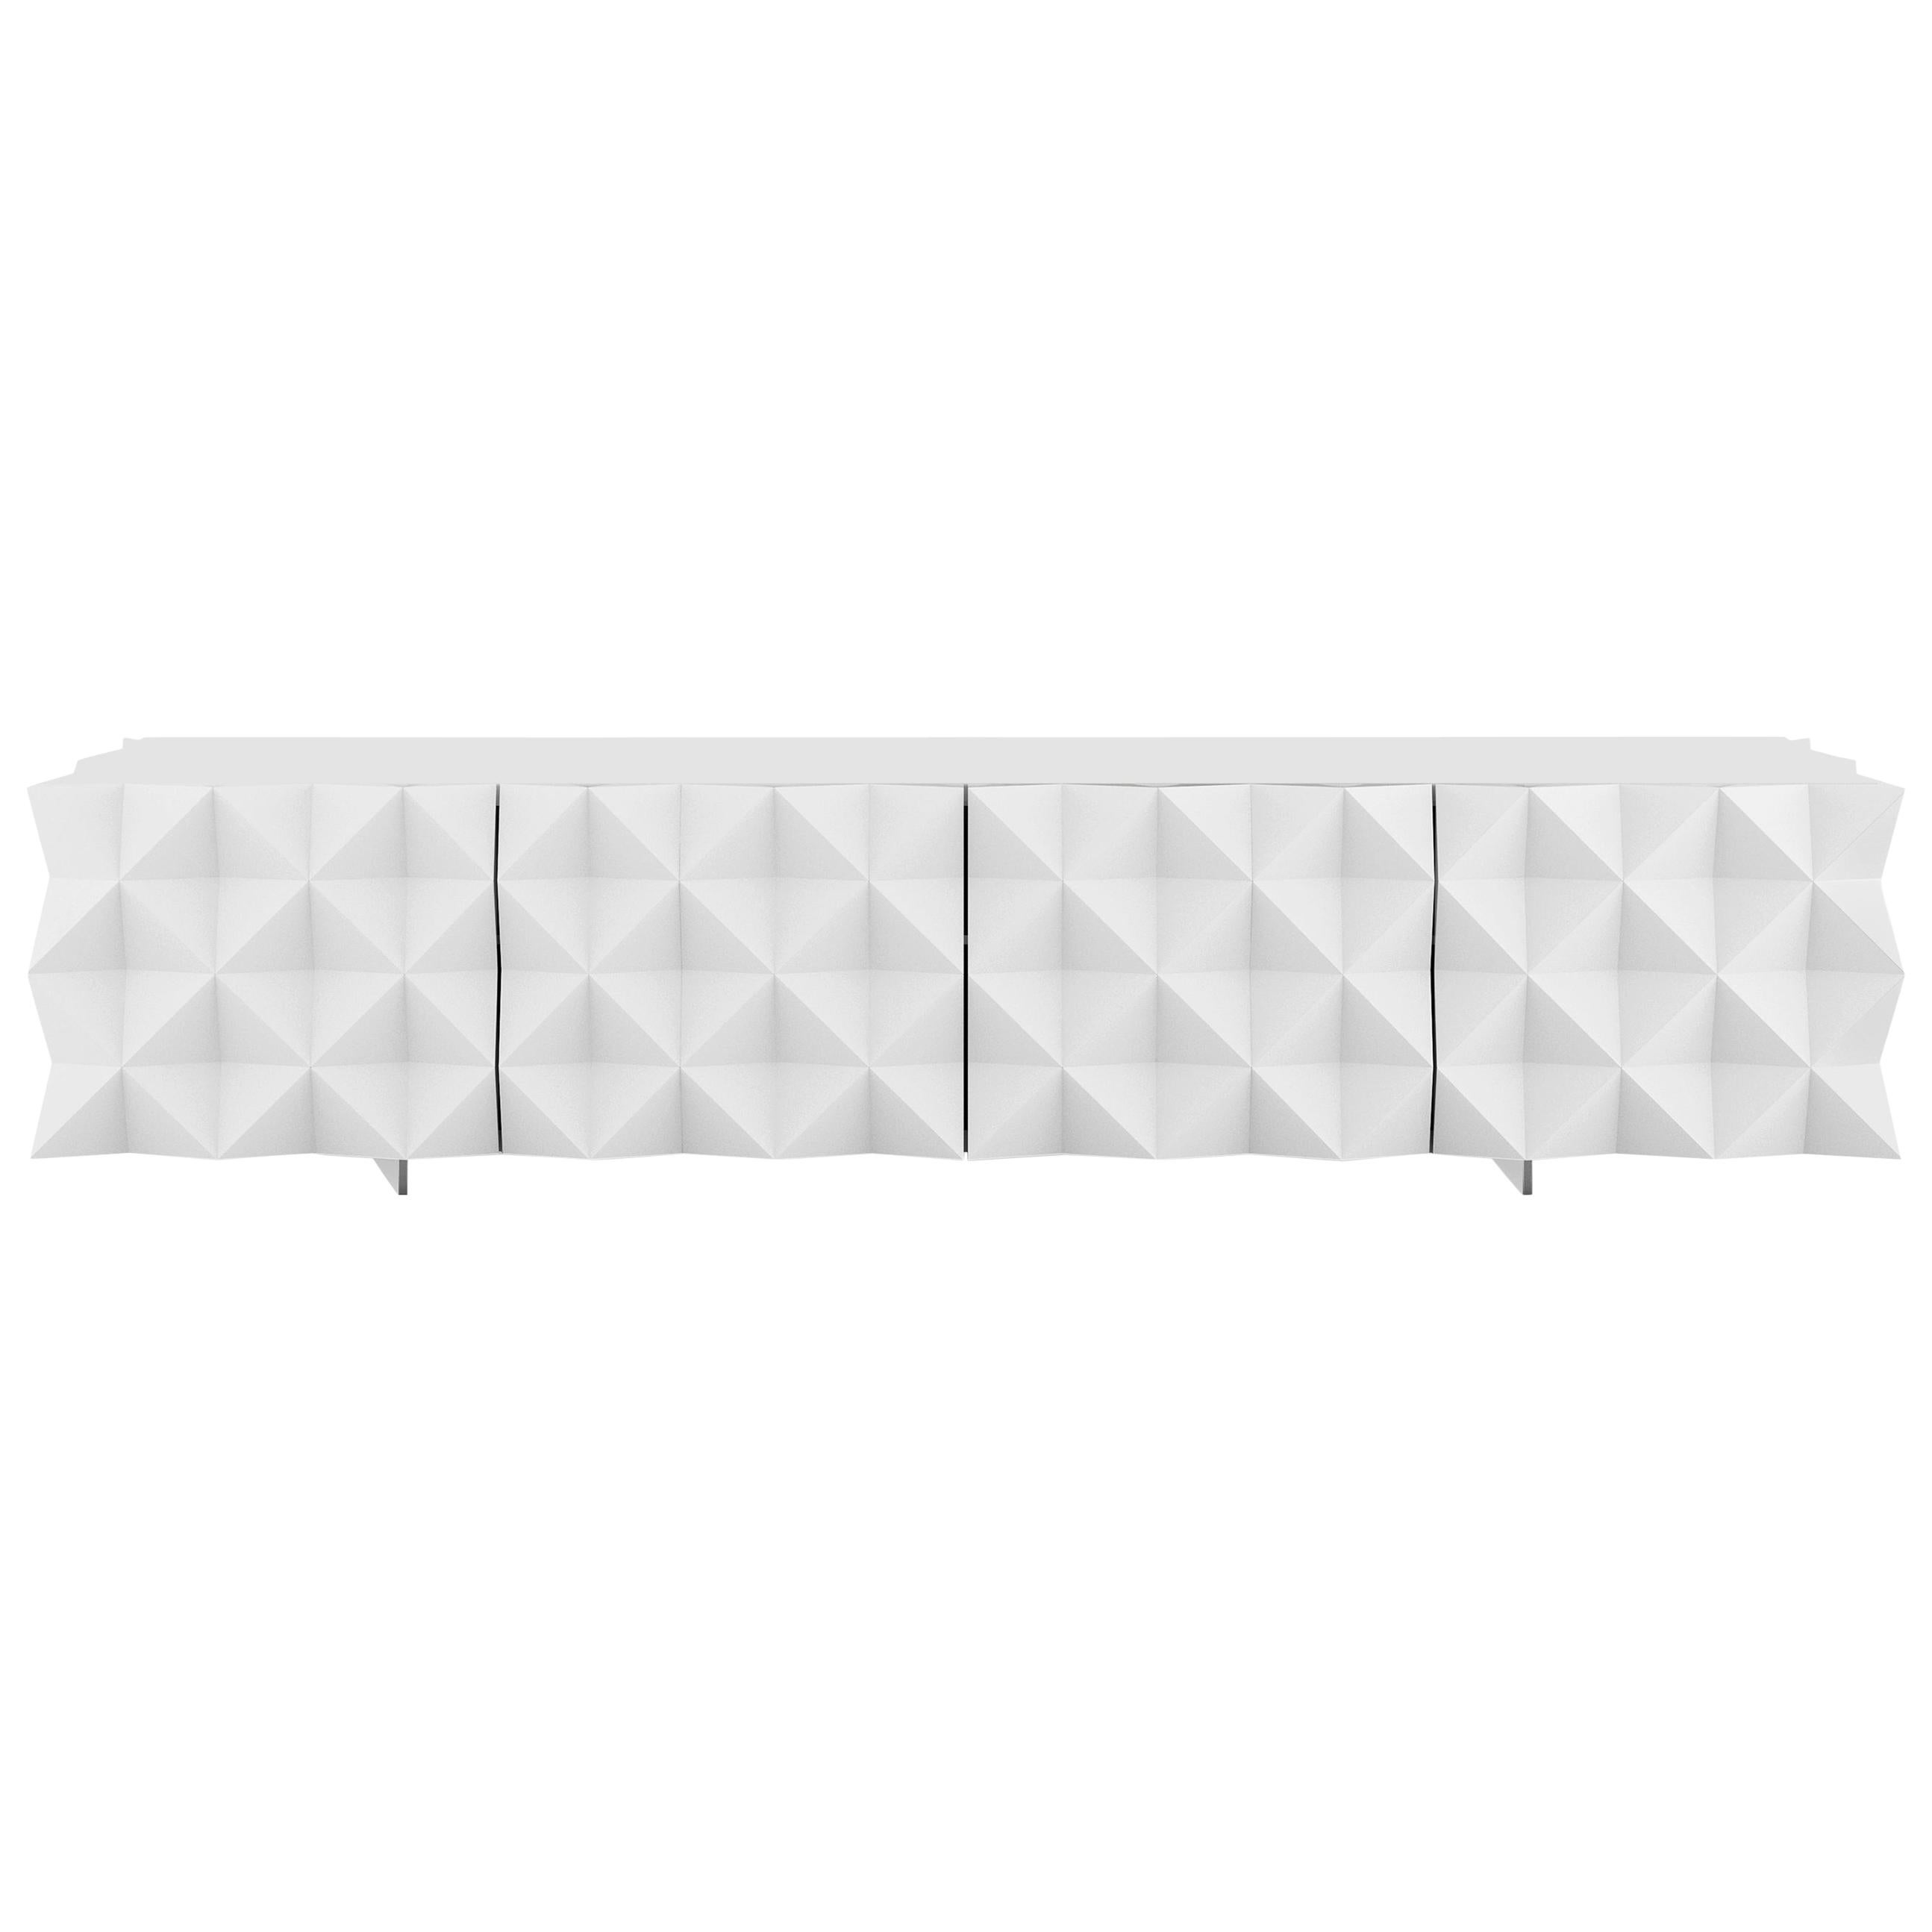 Geometric White TV Cabinet from Rocky Collection by Joel Escalona